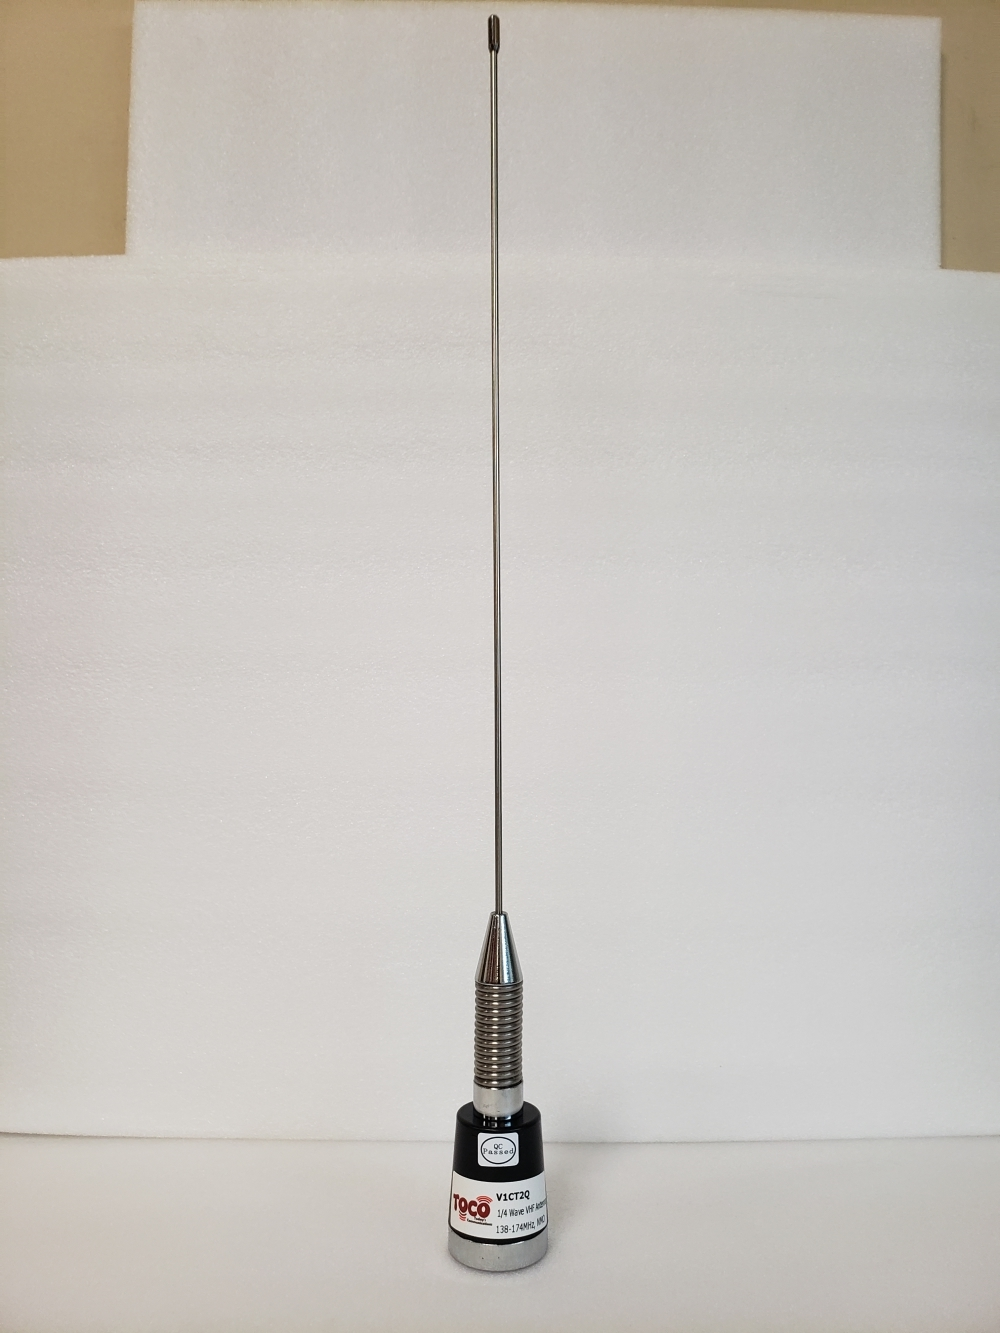 photo of 136-174 MHz 2dBi Quarter Wave Mobile Antenna